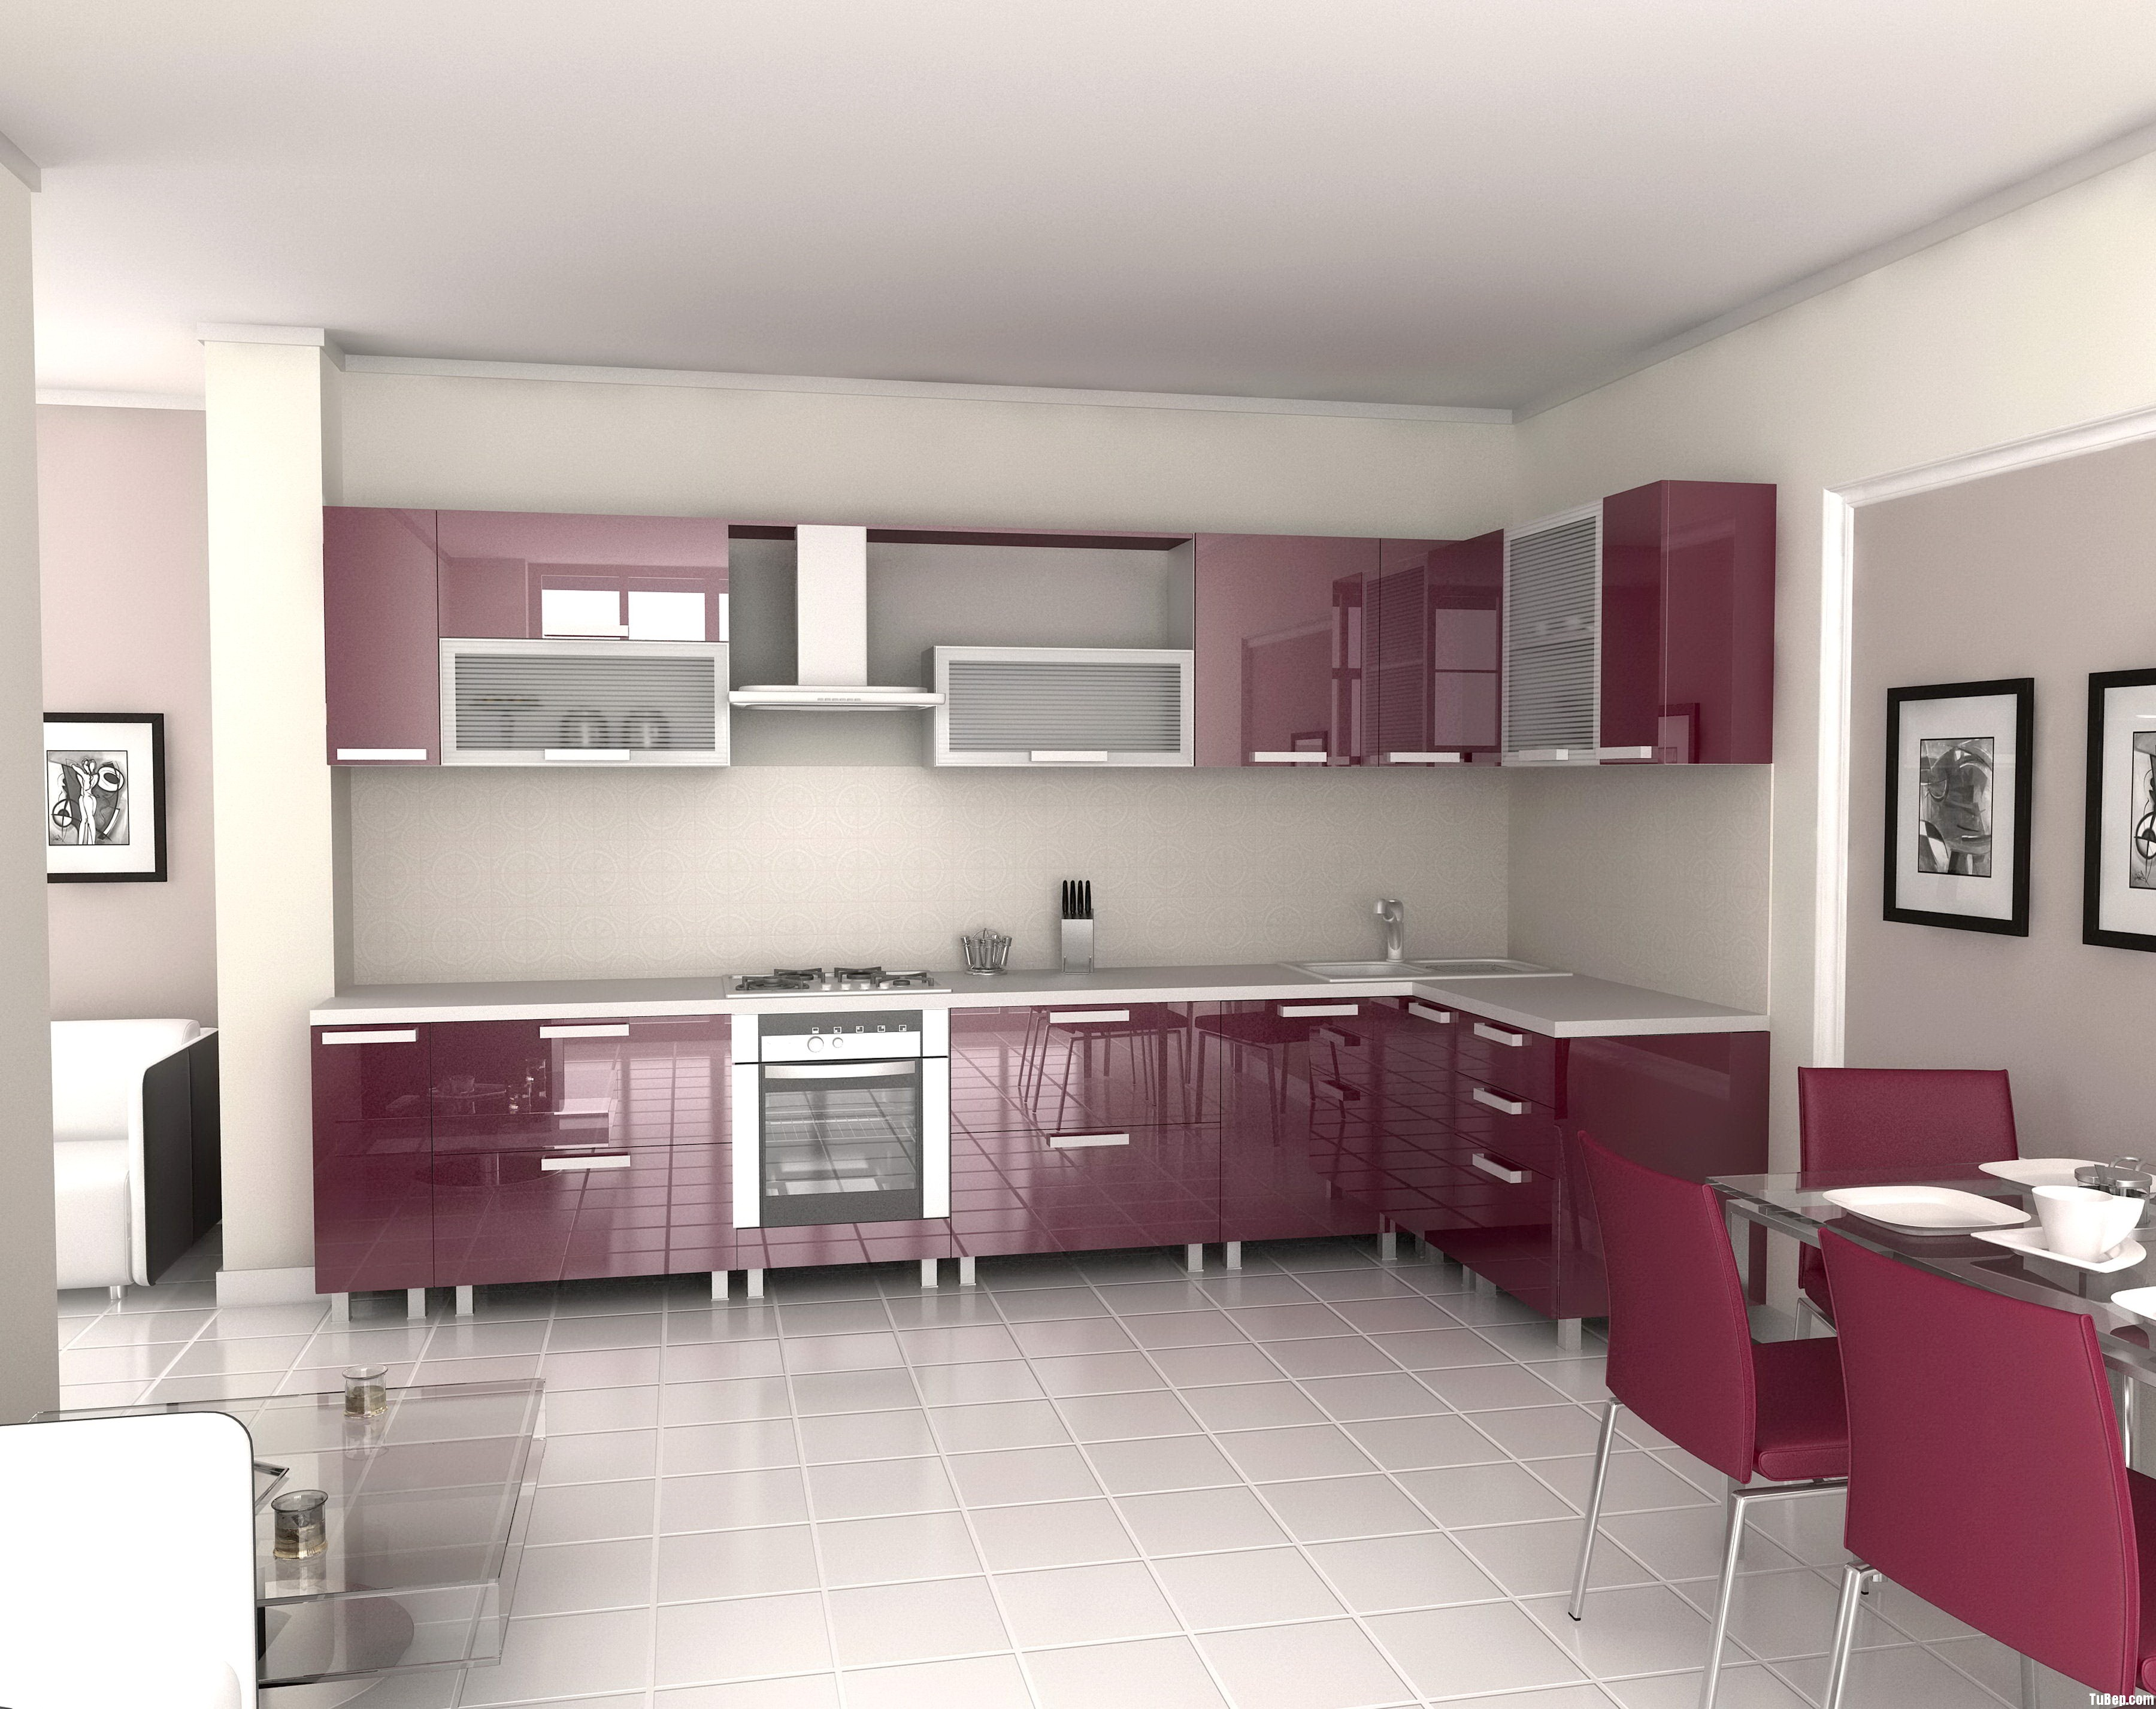 uncategorized awesome good kitchen design modern kitchen with high gloss acrylic kitcen cabinets decoration design create good kitchen design to solve constricted space problem be practical and deligh Tủ bếp gỗ Acrylic TBT0102